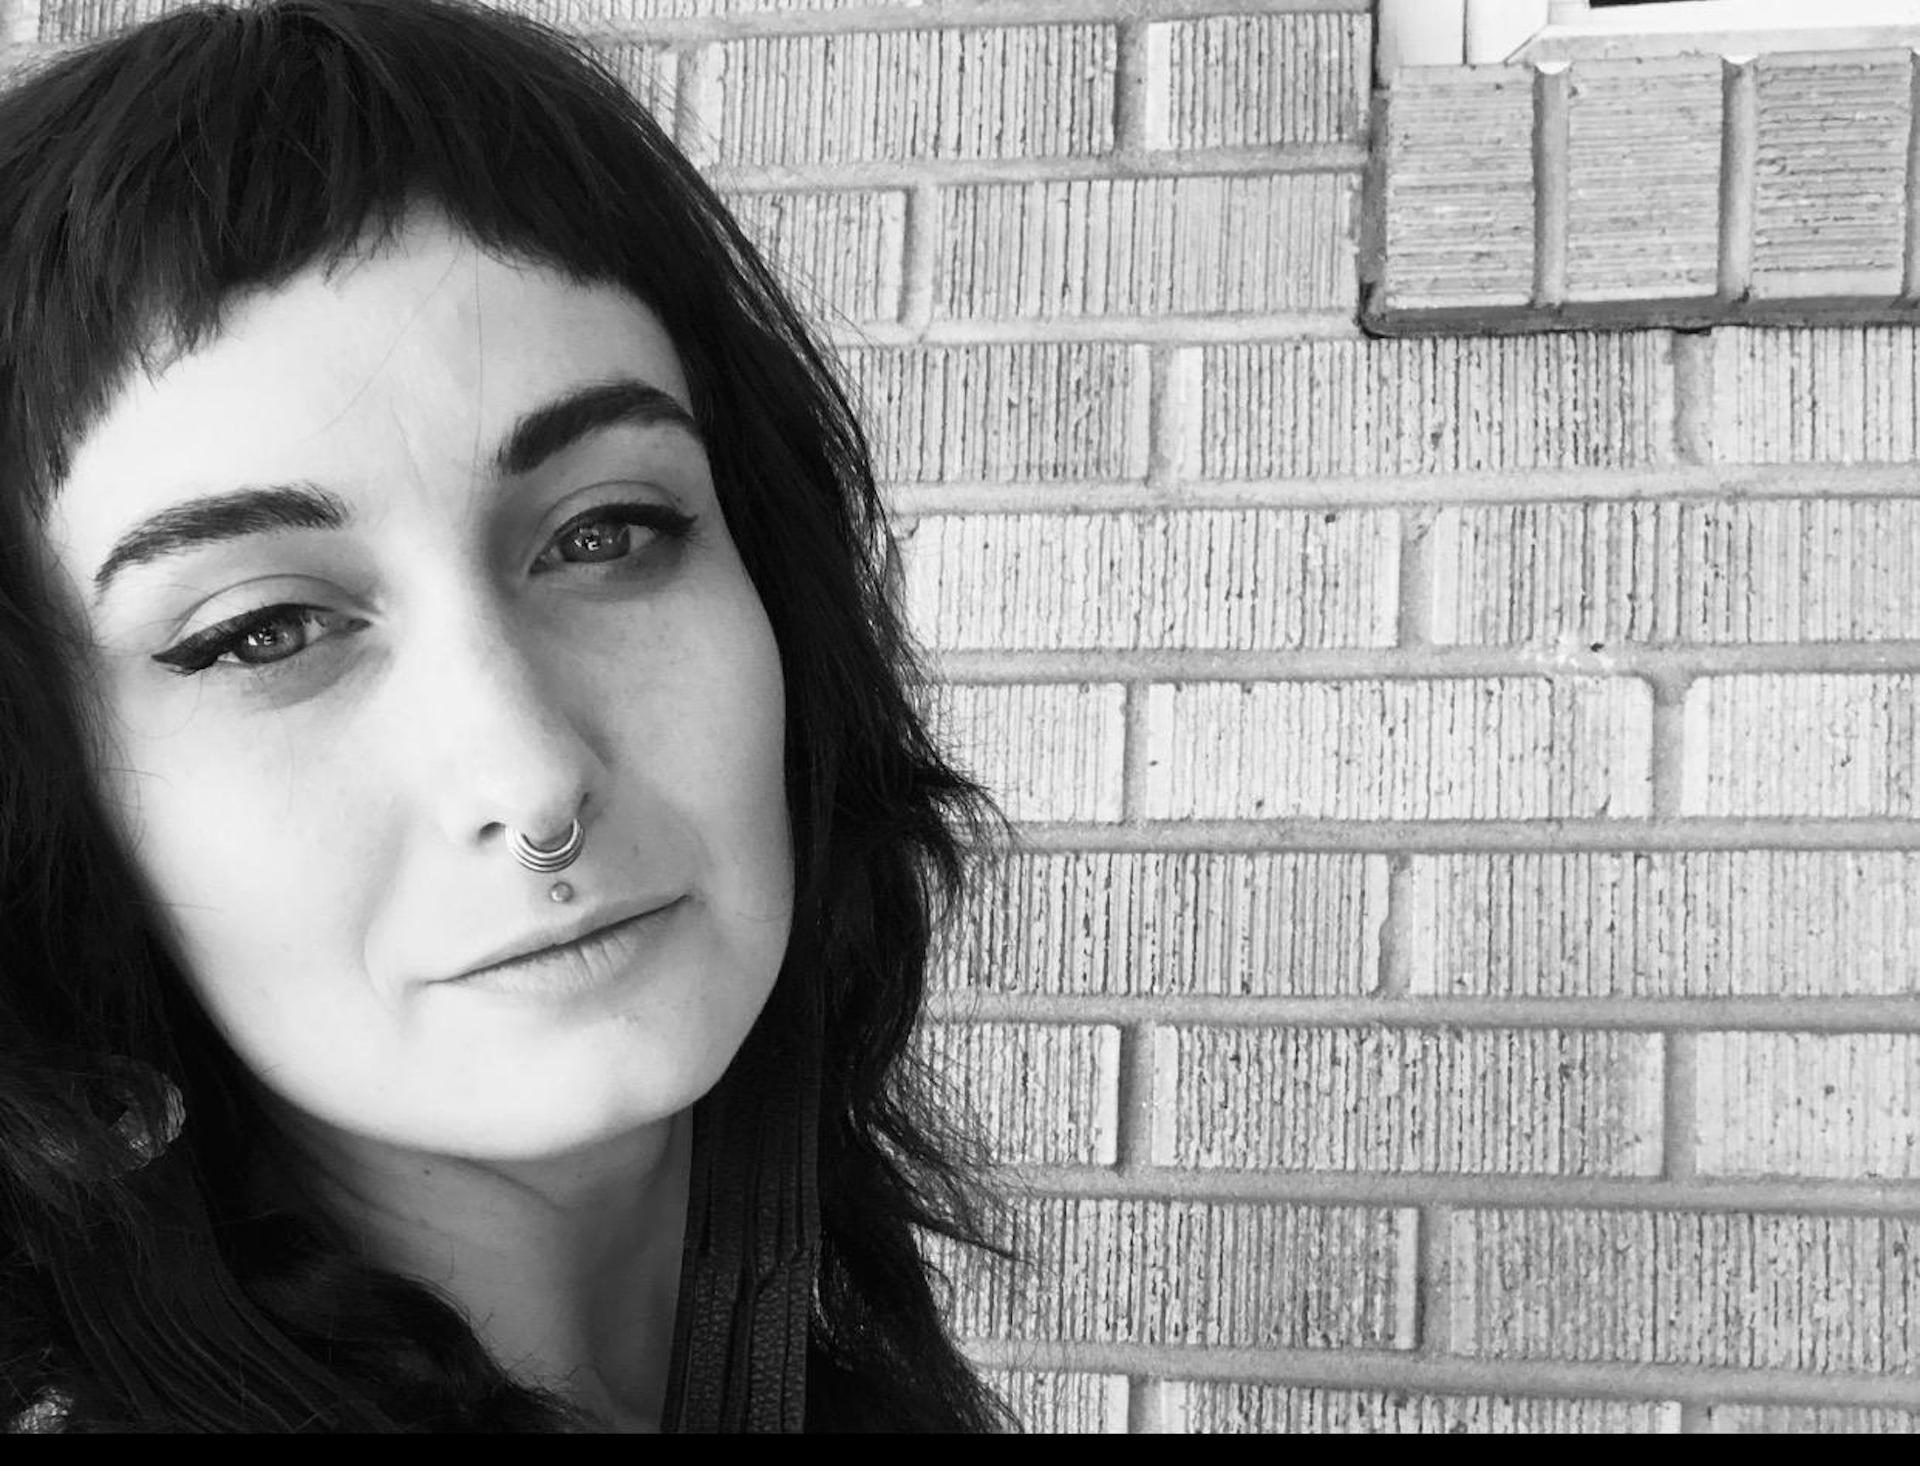 Abbey Rideout was laid off from two jobs she held as a barista when Gov. Wolf ordered all non-essential businesses in Pennsylvania to close March 16.